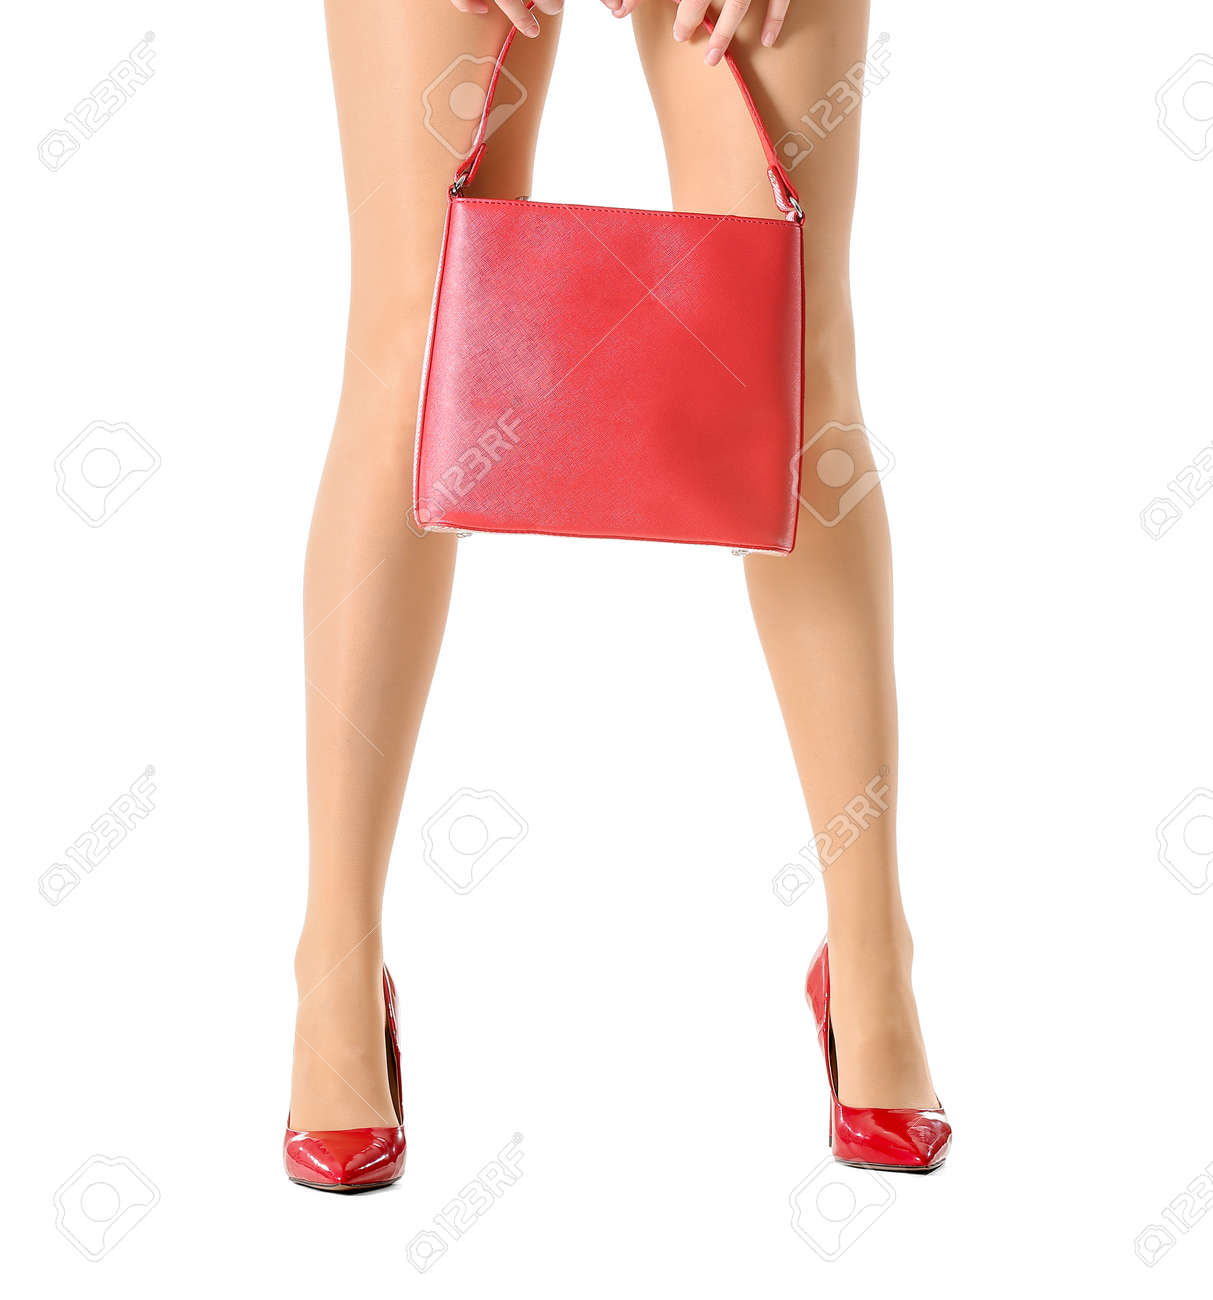 Beautiful young woman in tights and with bag on white background - 166676286